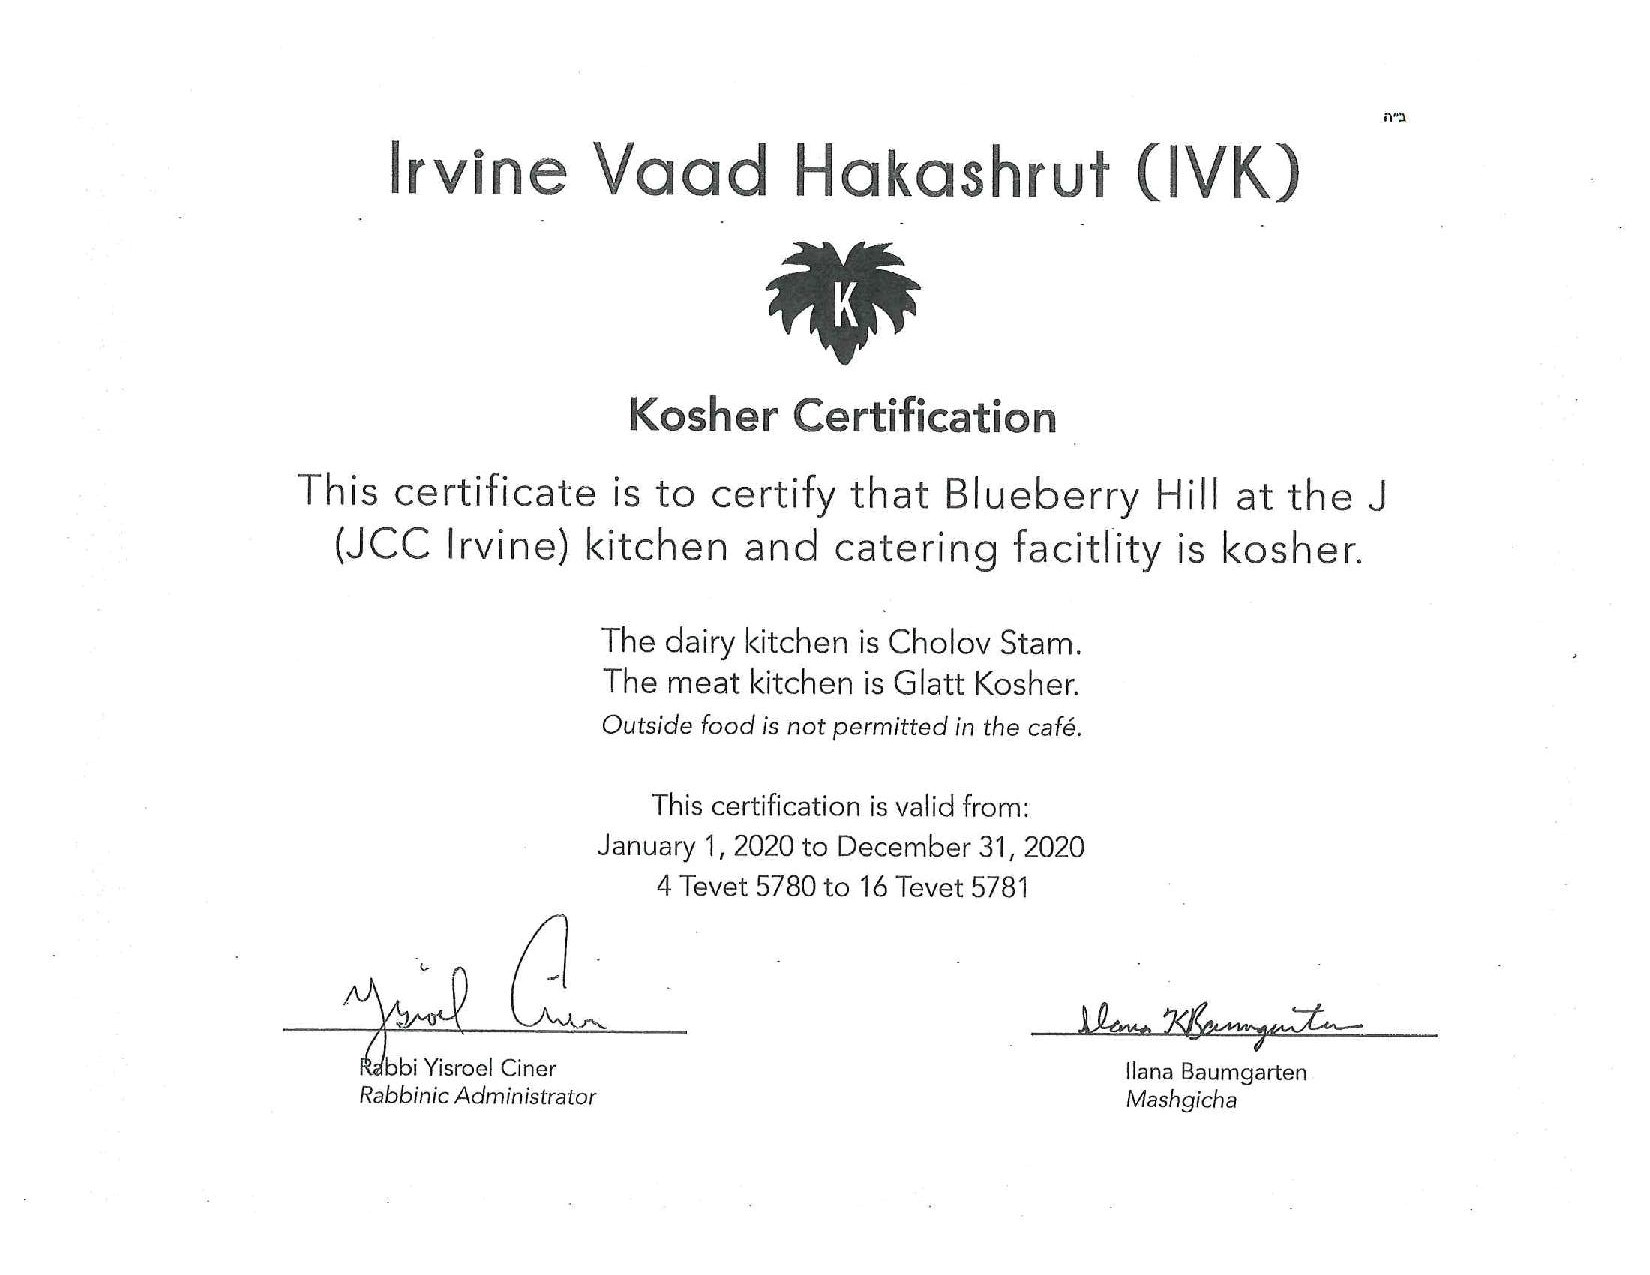 irvine vaad hakashrut (IVK) kosher certificatation. this certificate is to certify that Blurberry hill at the j (JCC Irvine) kitchen and catering facility is kosher. the dairy kitchen is cholov stam. the meat kitchen is glatt kosher. outside food is not permitted in the cafe. this certification is valid from: january 1st, 2020 to december 31st, 2020. 4 tevet 5780 to 16 tevet 5781. signed by rabbi yisroel ciner, rabbinic administrator and ilana baumgarten, mashgicha.